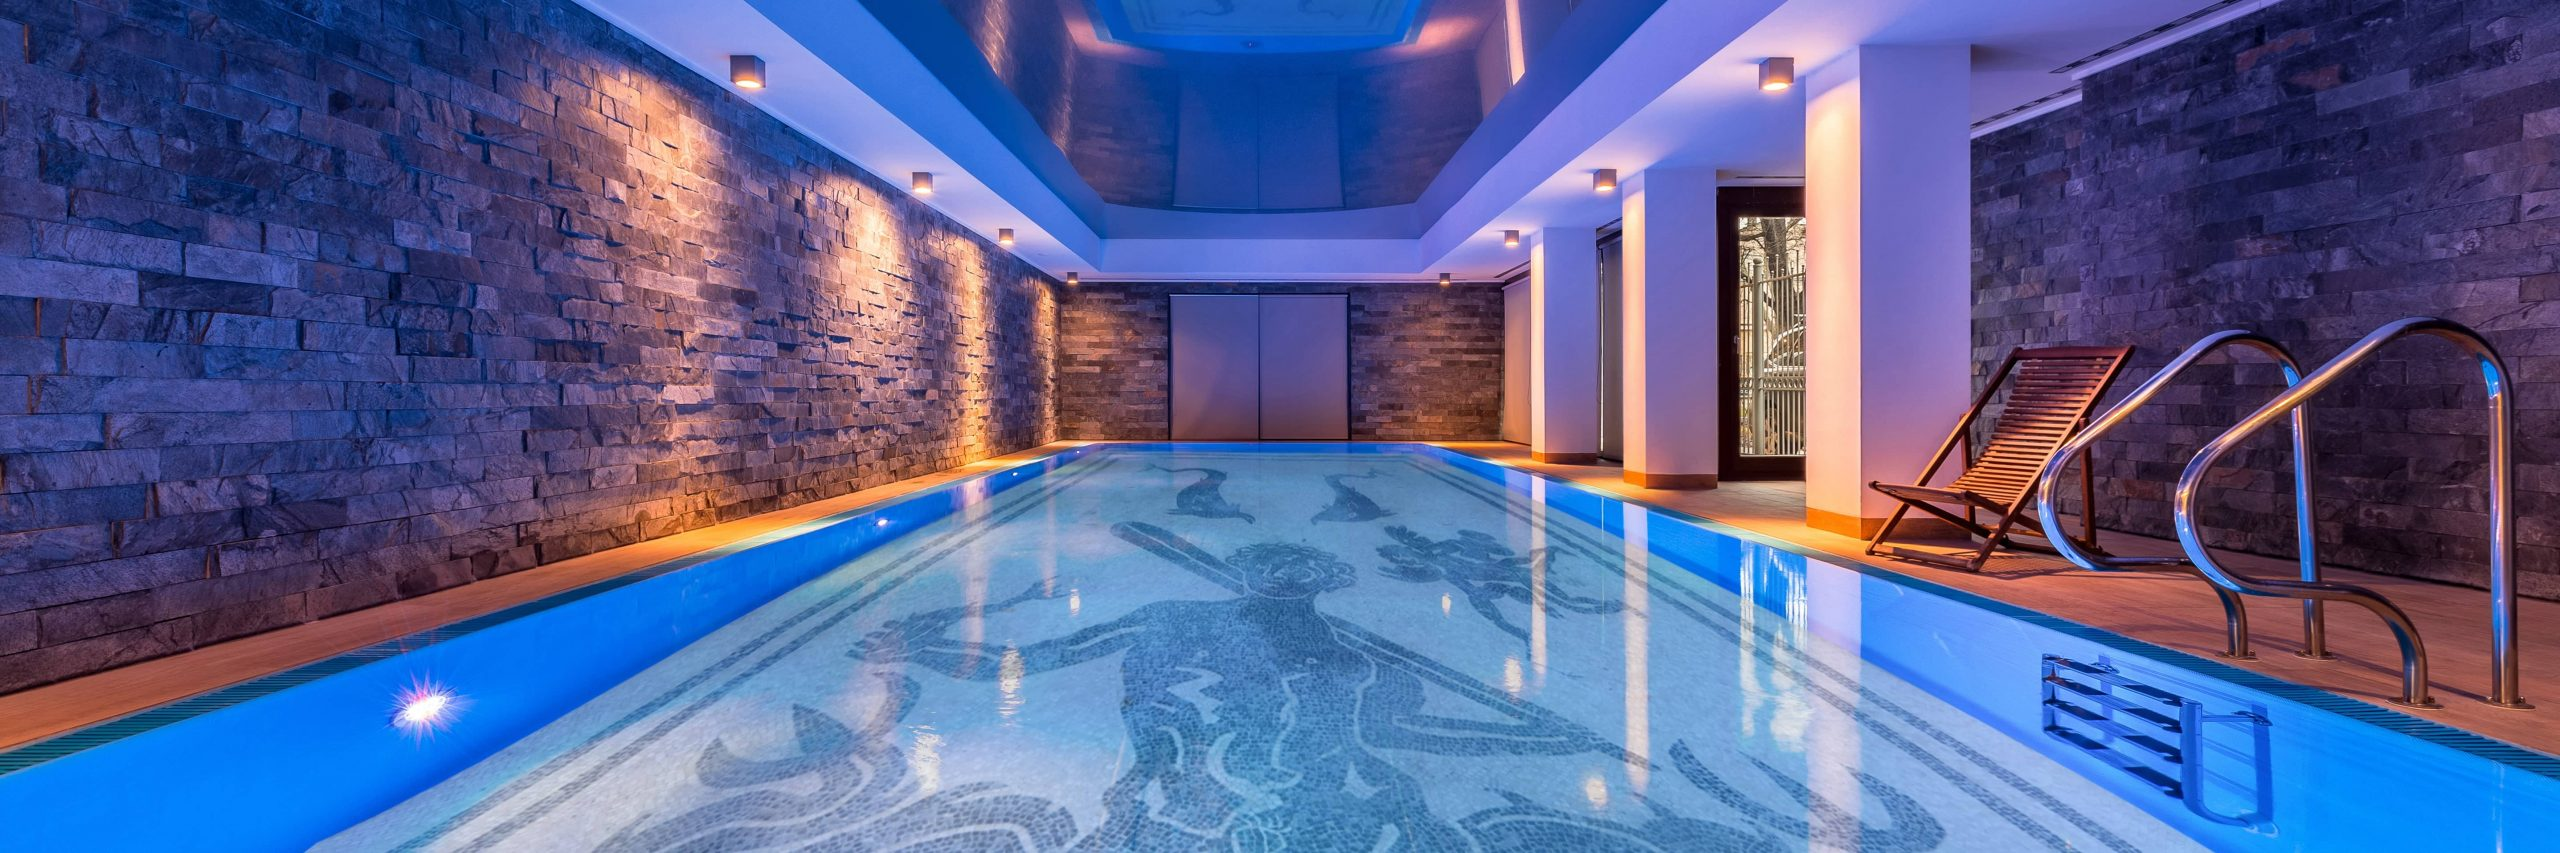 INDOOR POOL AKACHA Design